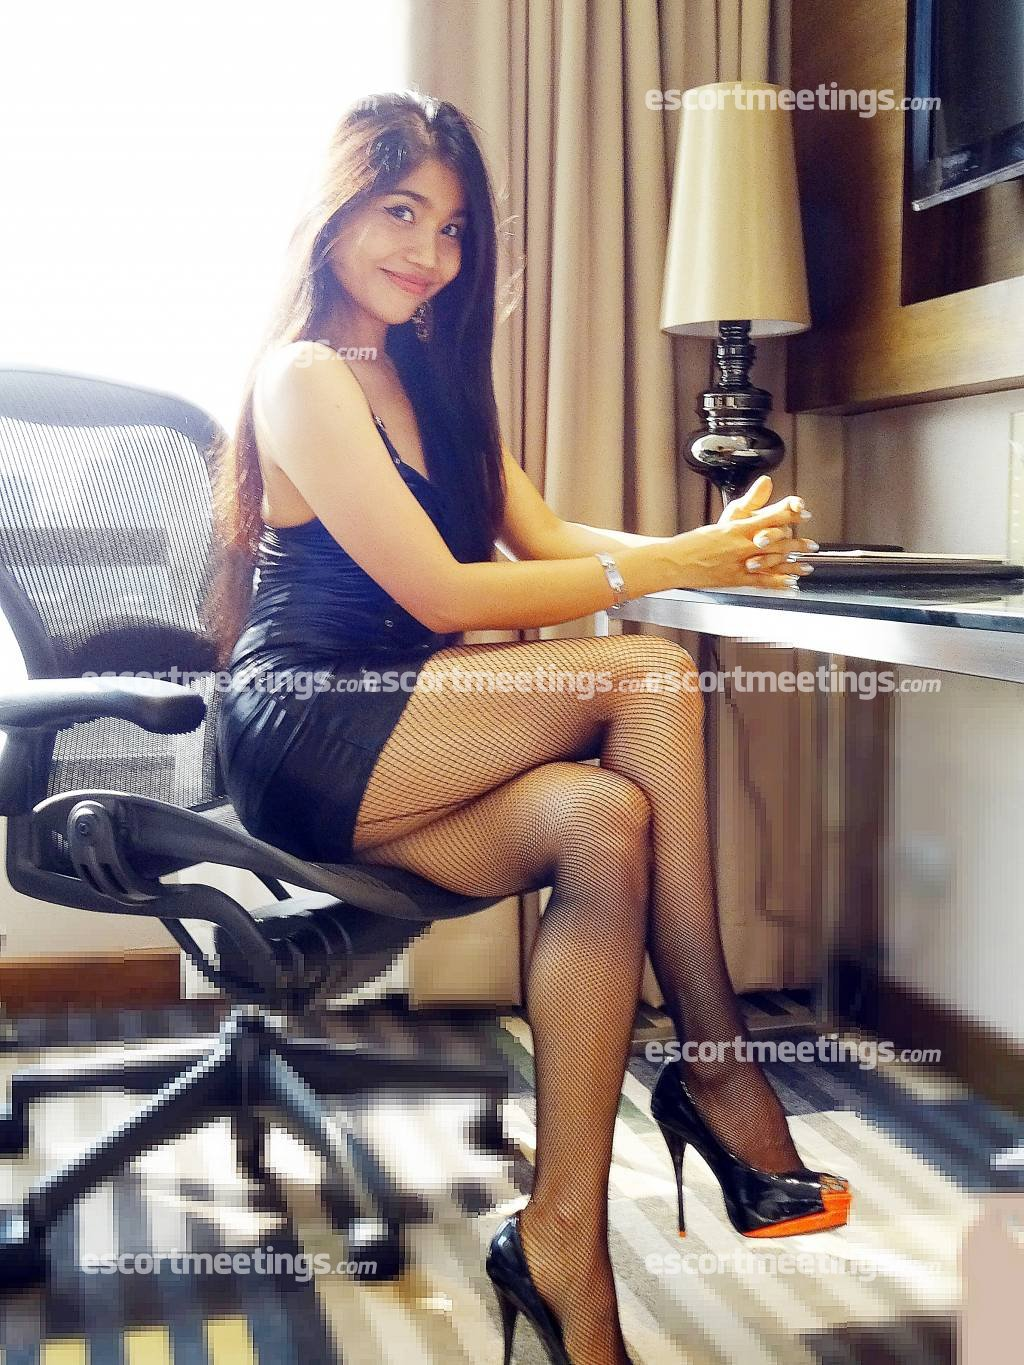 thai massage outcall bangkok older women escorts